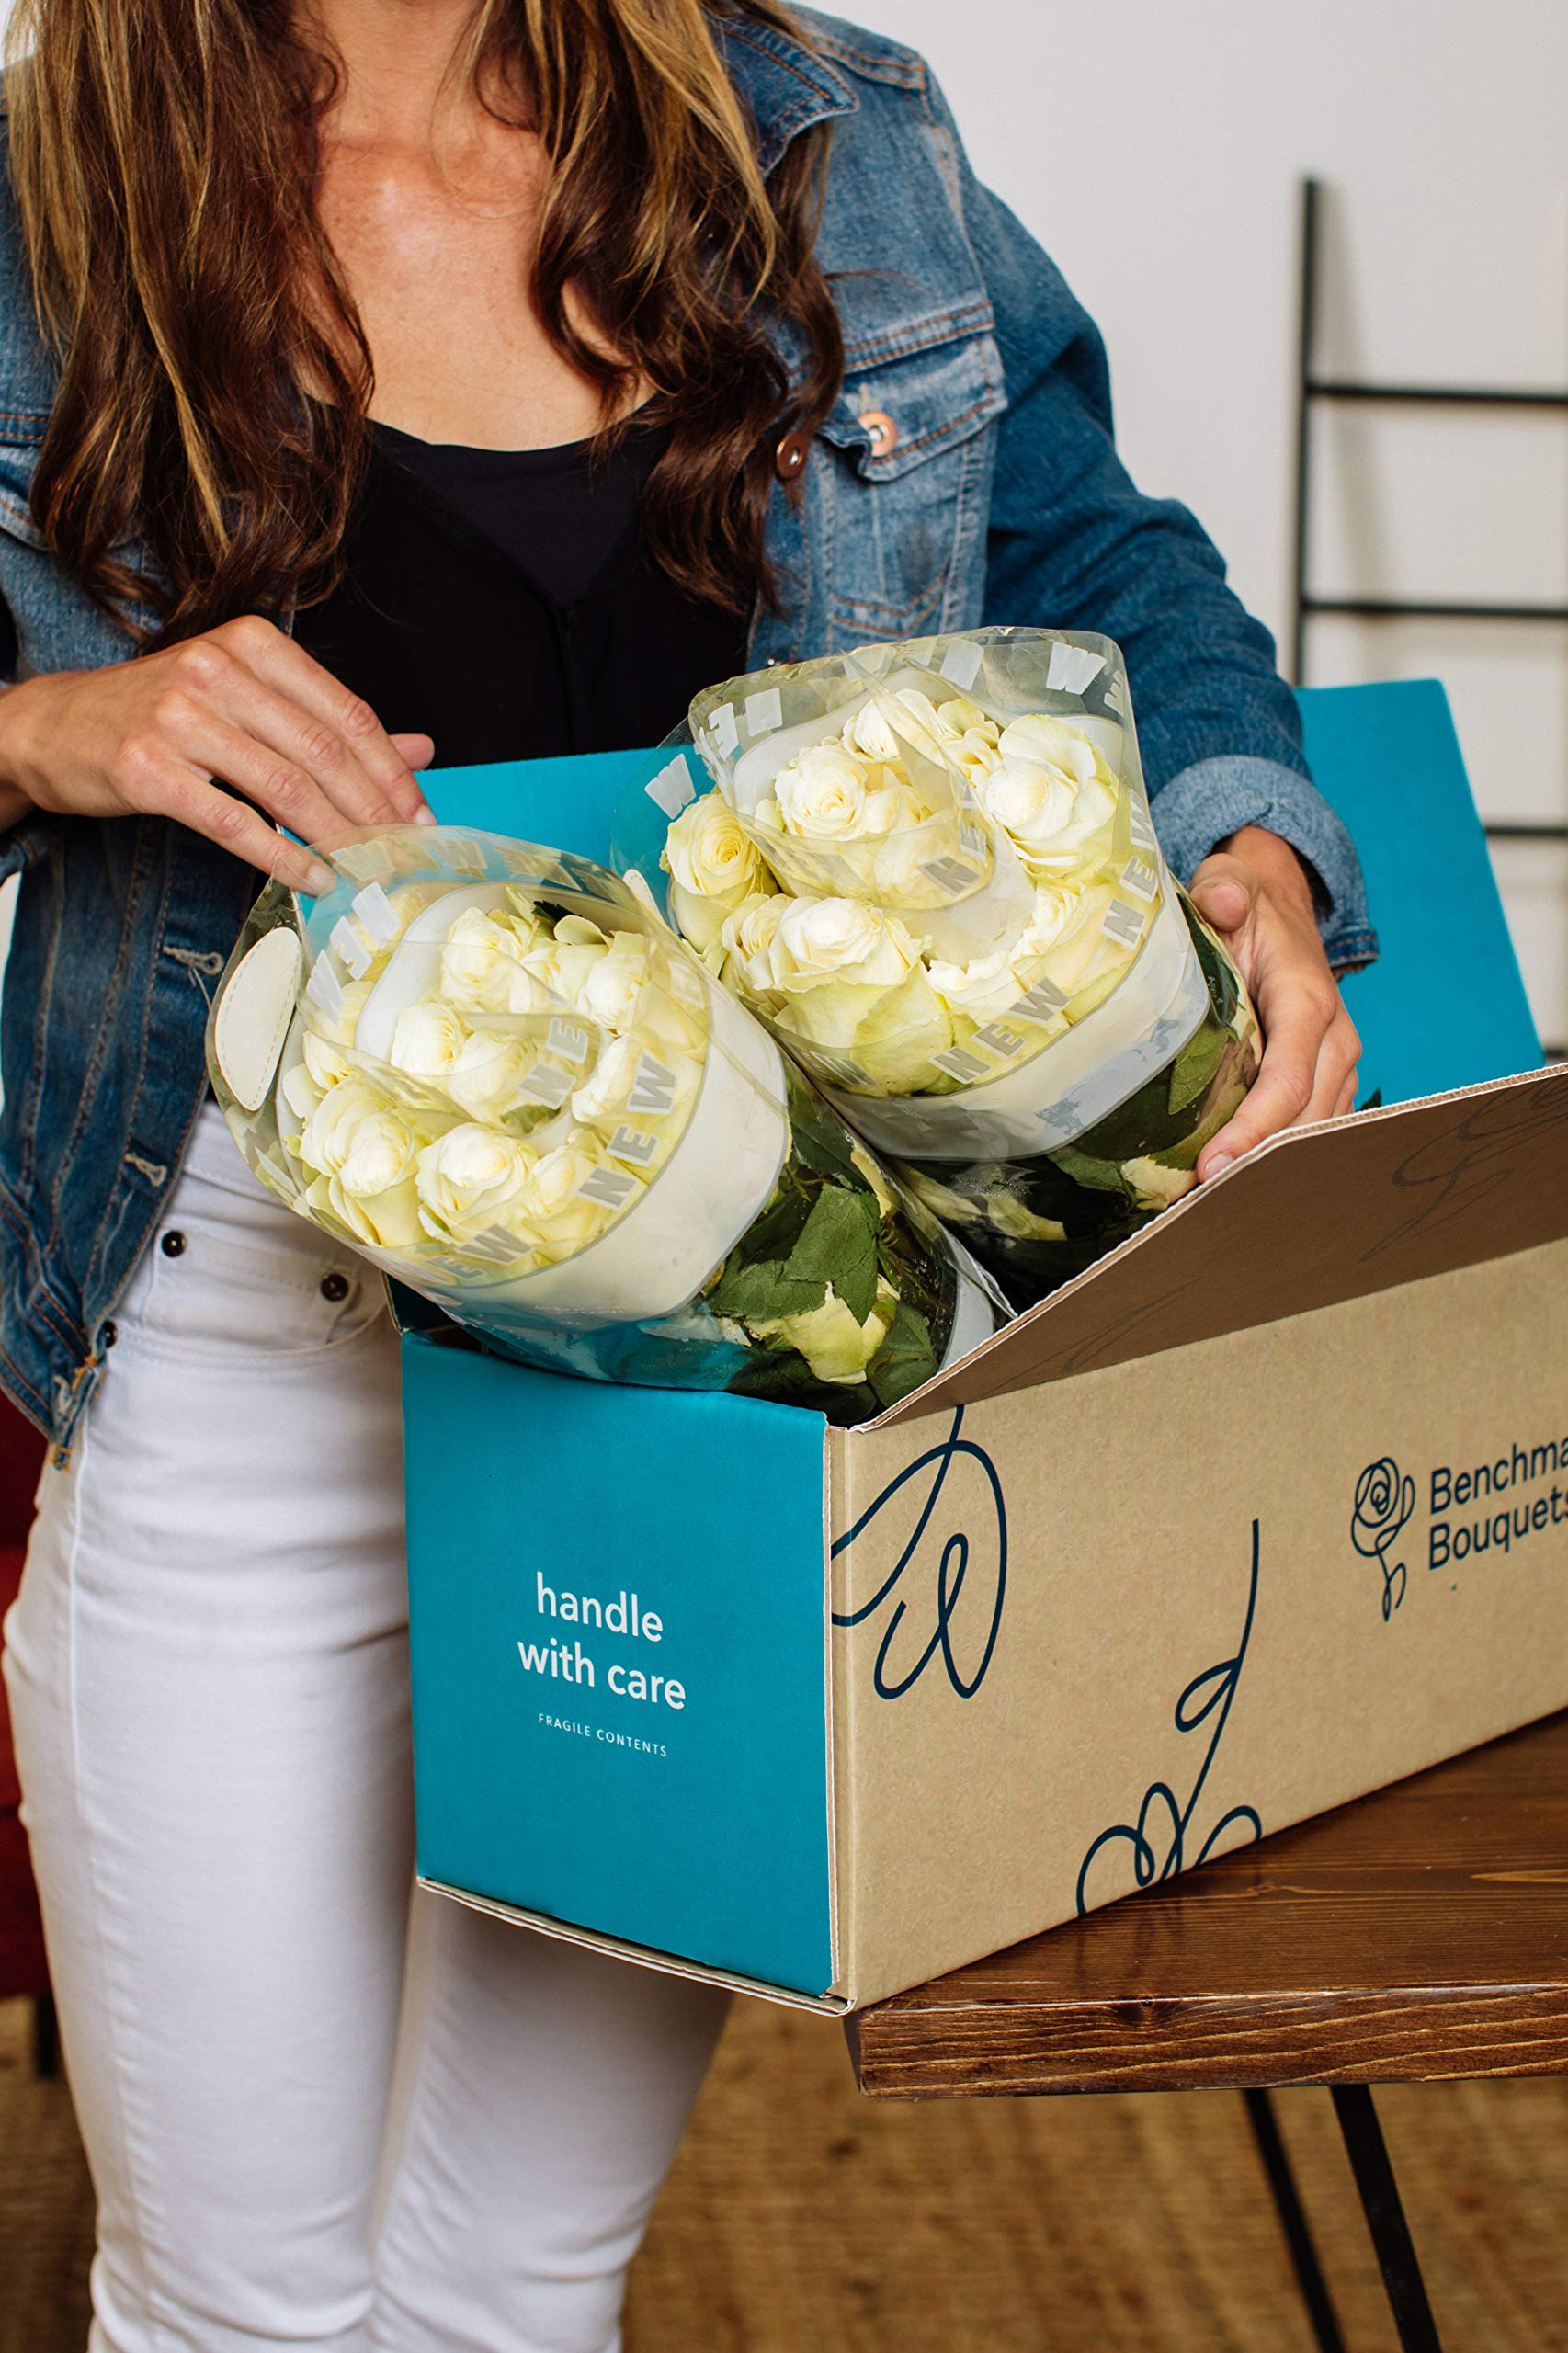 Benchmark Bouquets 50 White Roses Farm Direct (Fresh Cut Flowers) by Benchmark Bouquets (Image #2)